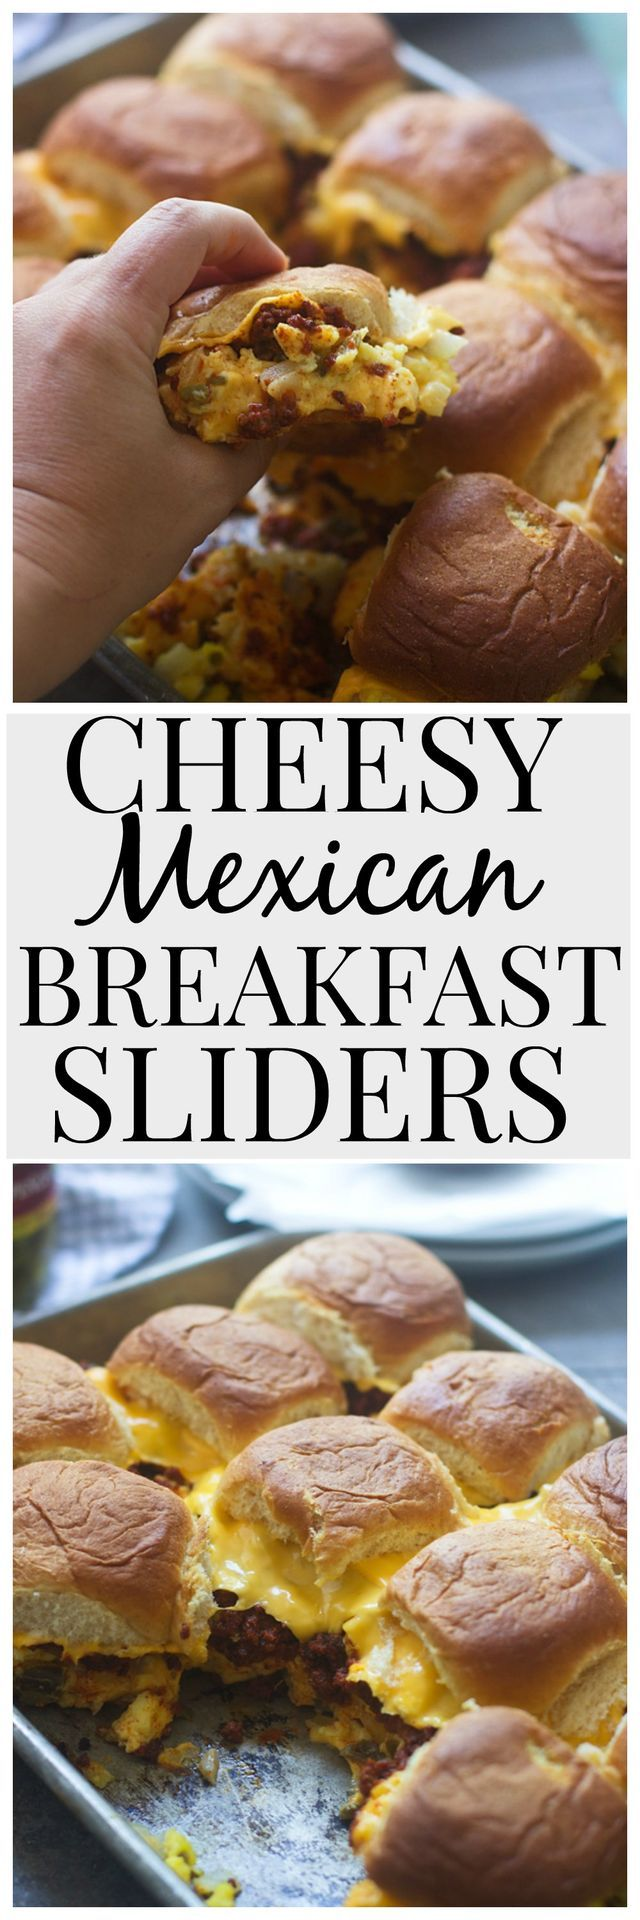 Cheese. Chorizo. Eggs. Hawaiian buns. I never knew those four humble ingredients could yield the most melt-in-your-mouth, ridiculously delicious breakfast concoction I've had in months. But they did,